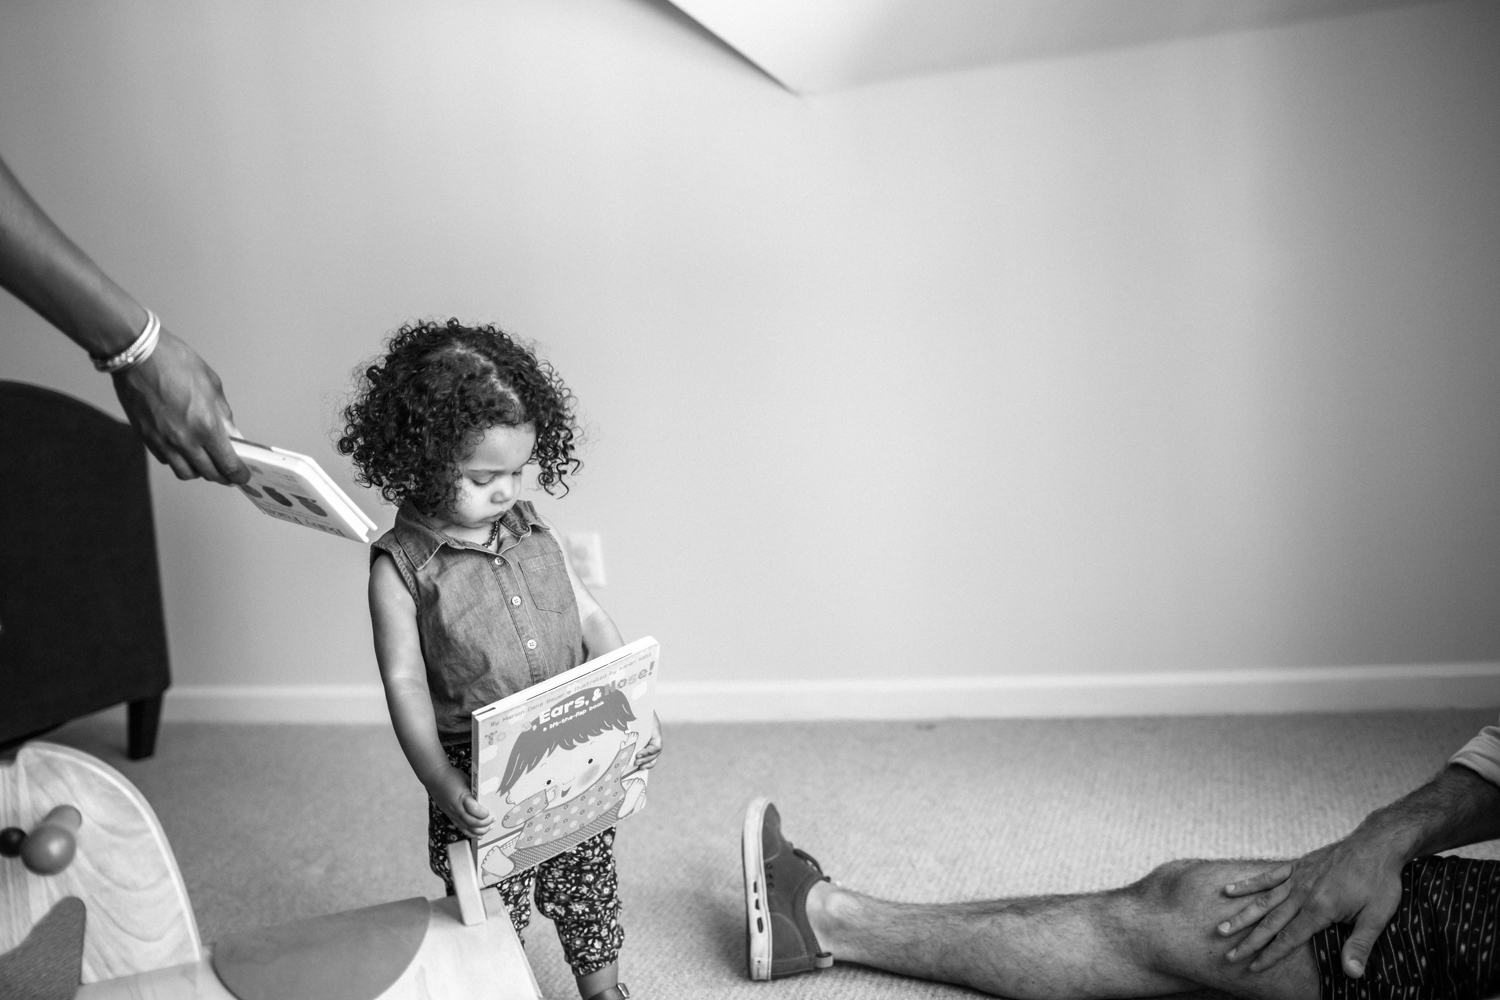 sacramento family photographer natural light lifestyle documentary